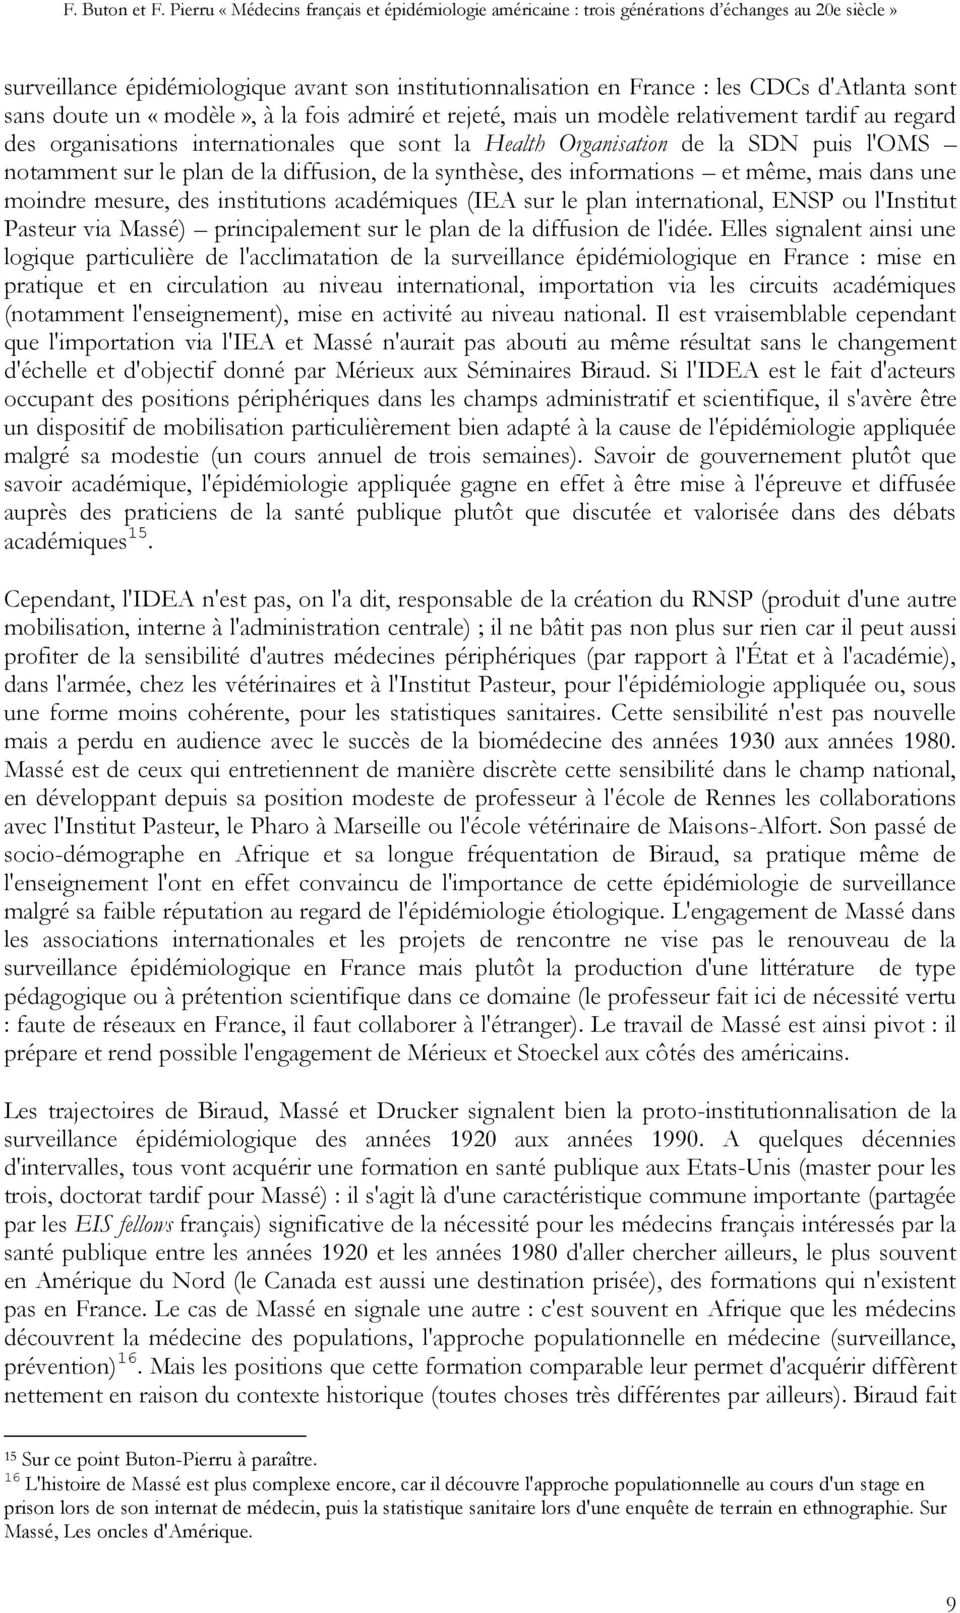 institutions académiques (IEA sur le plan international, ENSP ou l'institut Pasteur via Massé) principalement sur le plan de la diffusion de l'idée.